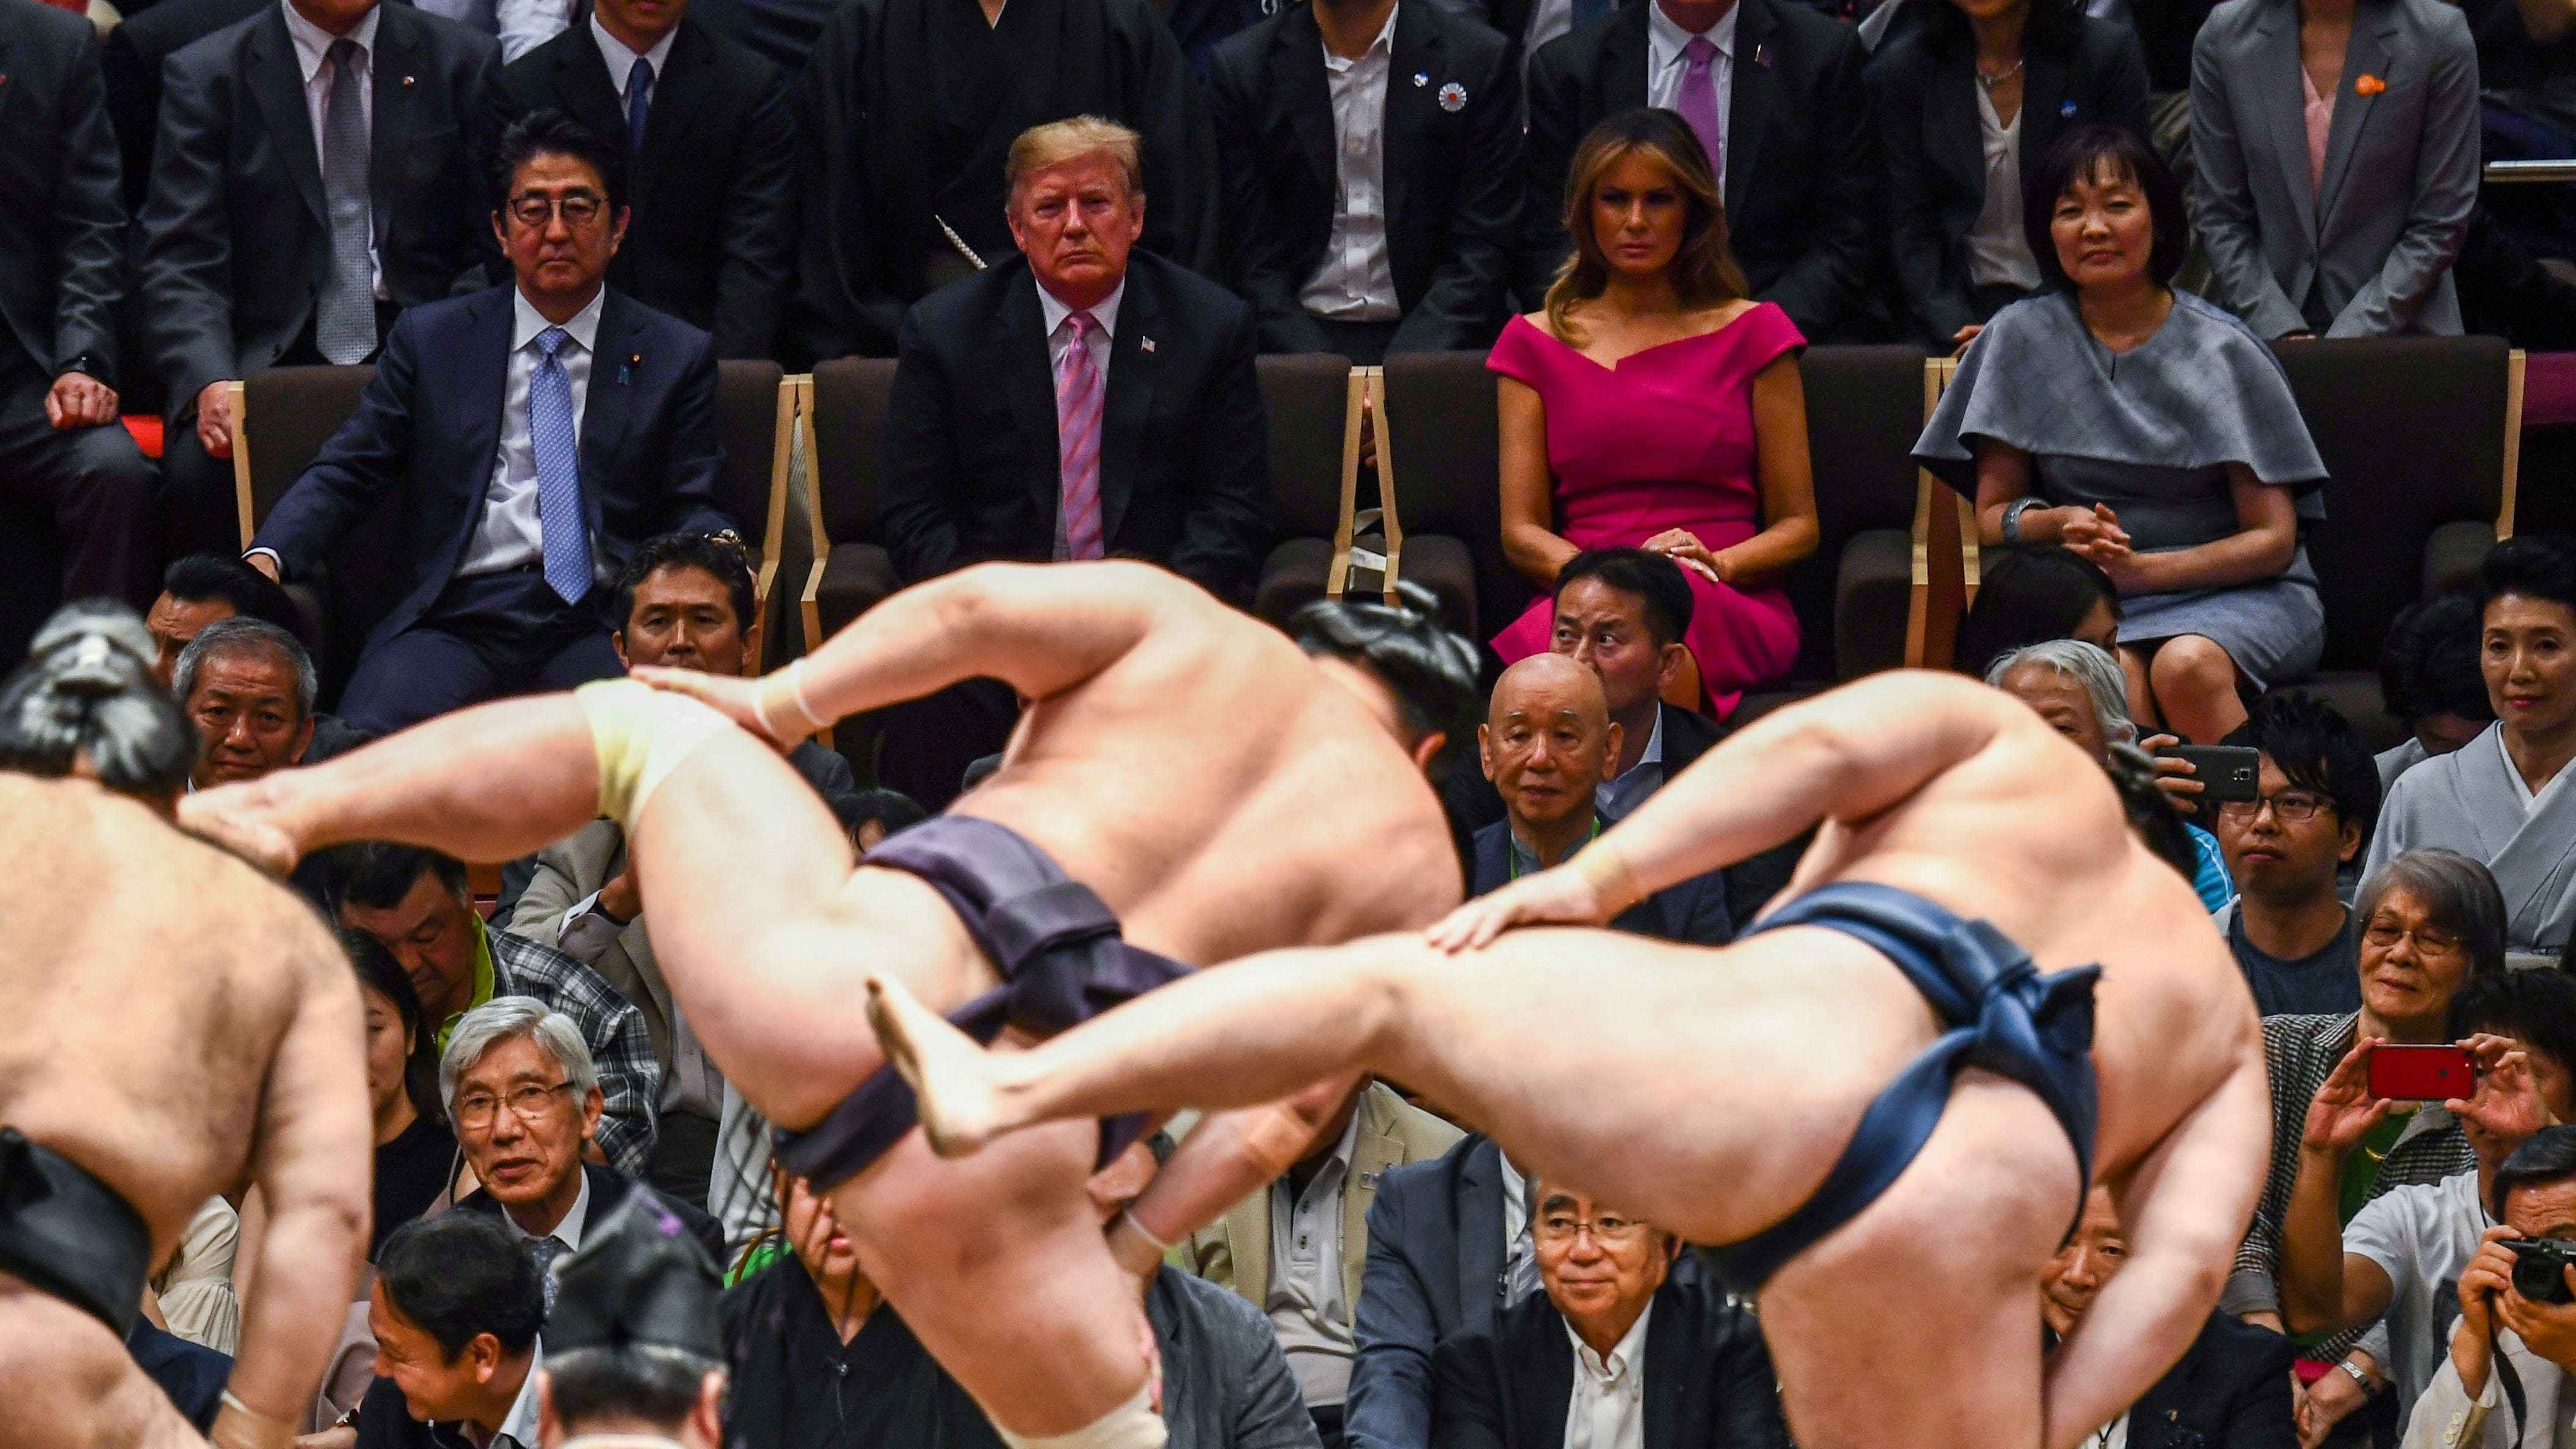 U.S. President Donald Trump and First Lady Melania Trump are accompanied by Japan's Prime Minister Shinzo Abe and his wife Akie Abe (center row) as they watch a sumo demonstration during the Summer Grand Sumo Tournament in Tokyo on May 26, 2019.